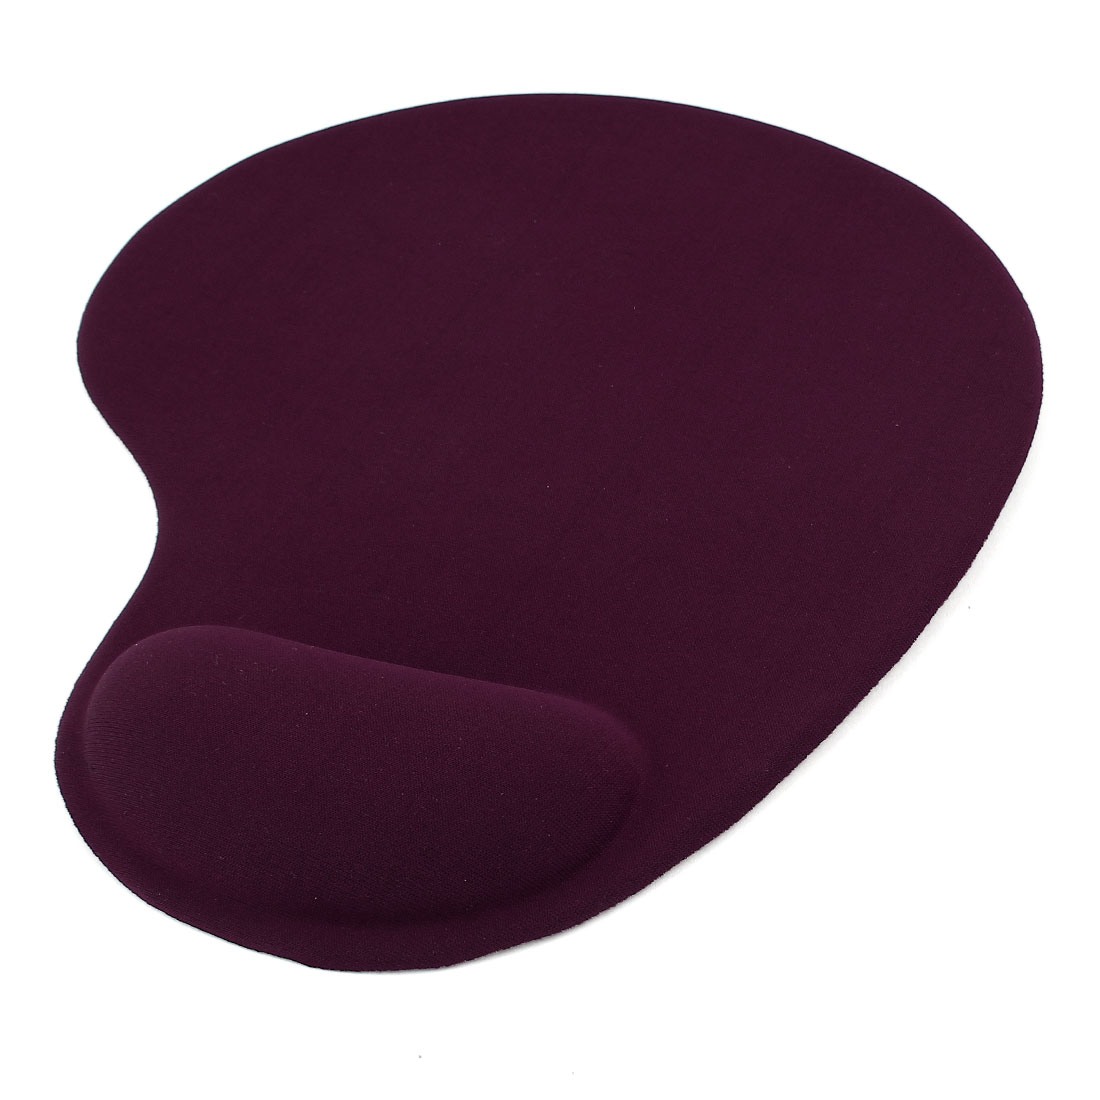 Burgundy Silicone Gel Wrist Rest Mouse Pad Mat for Laptop Desktop PC